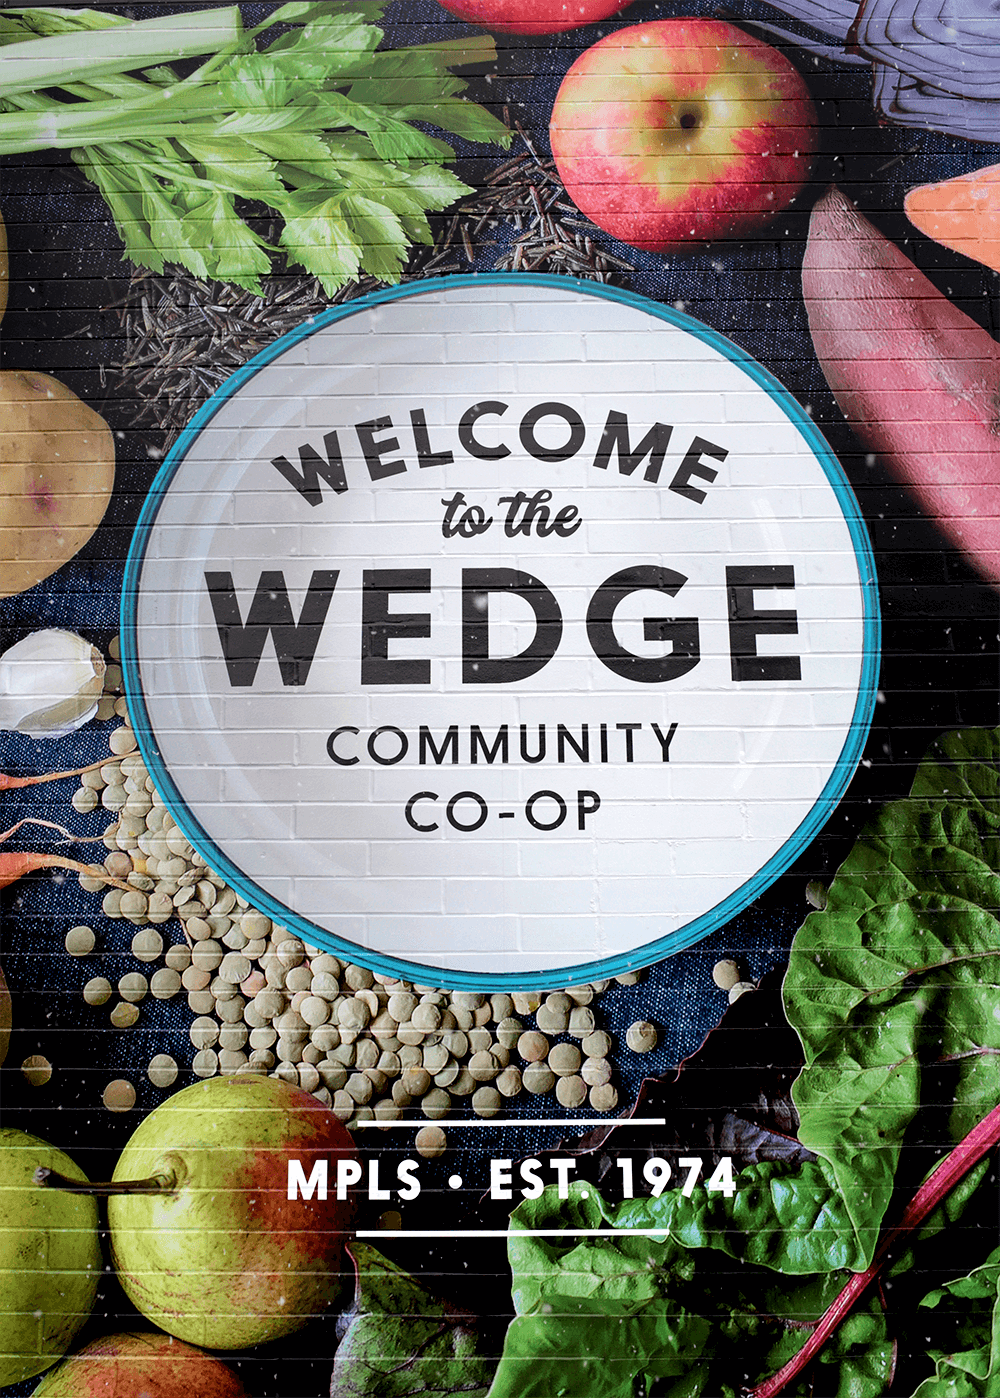 The Wedge Co-op